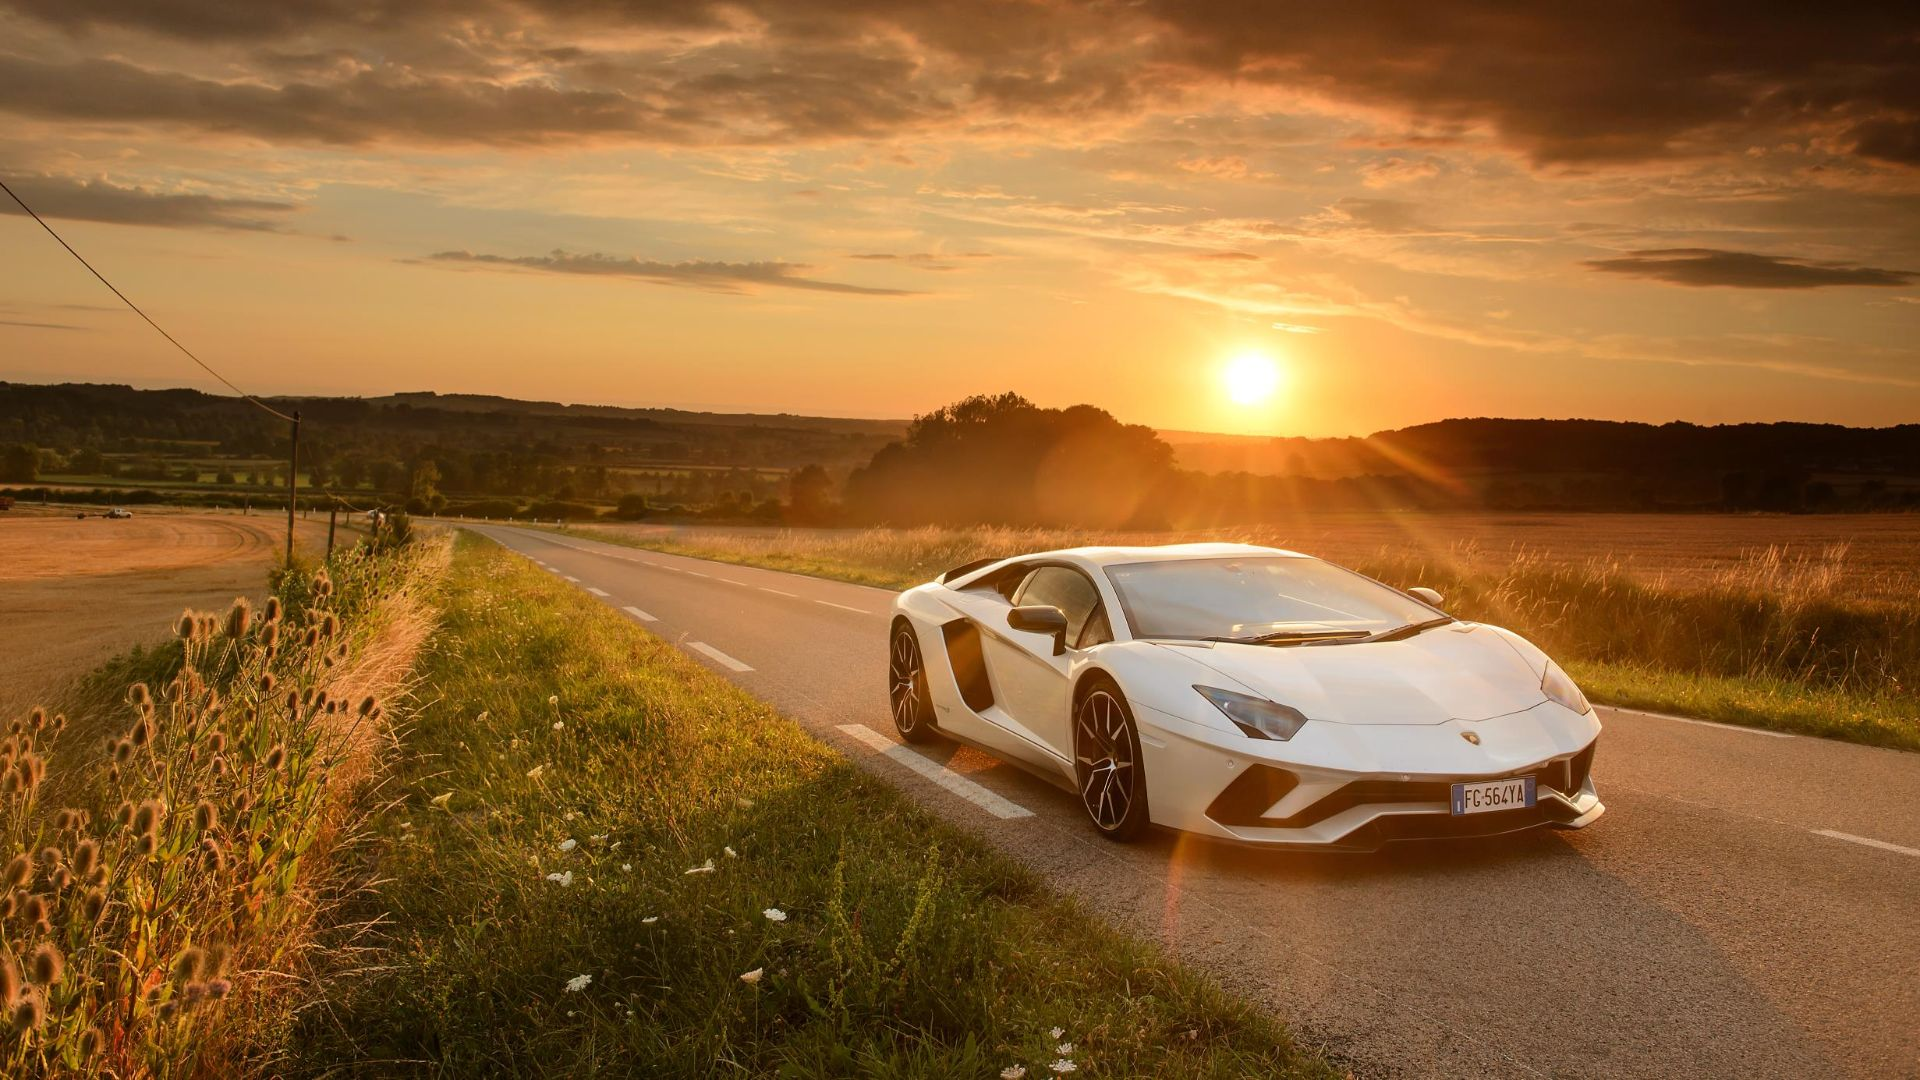 This Decade S Most Beautiful Car According To Science